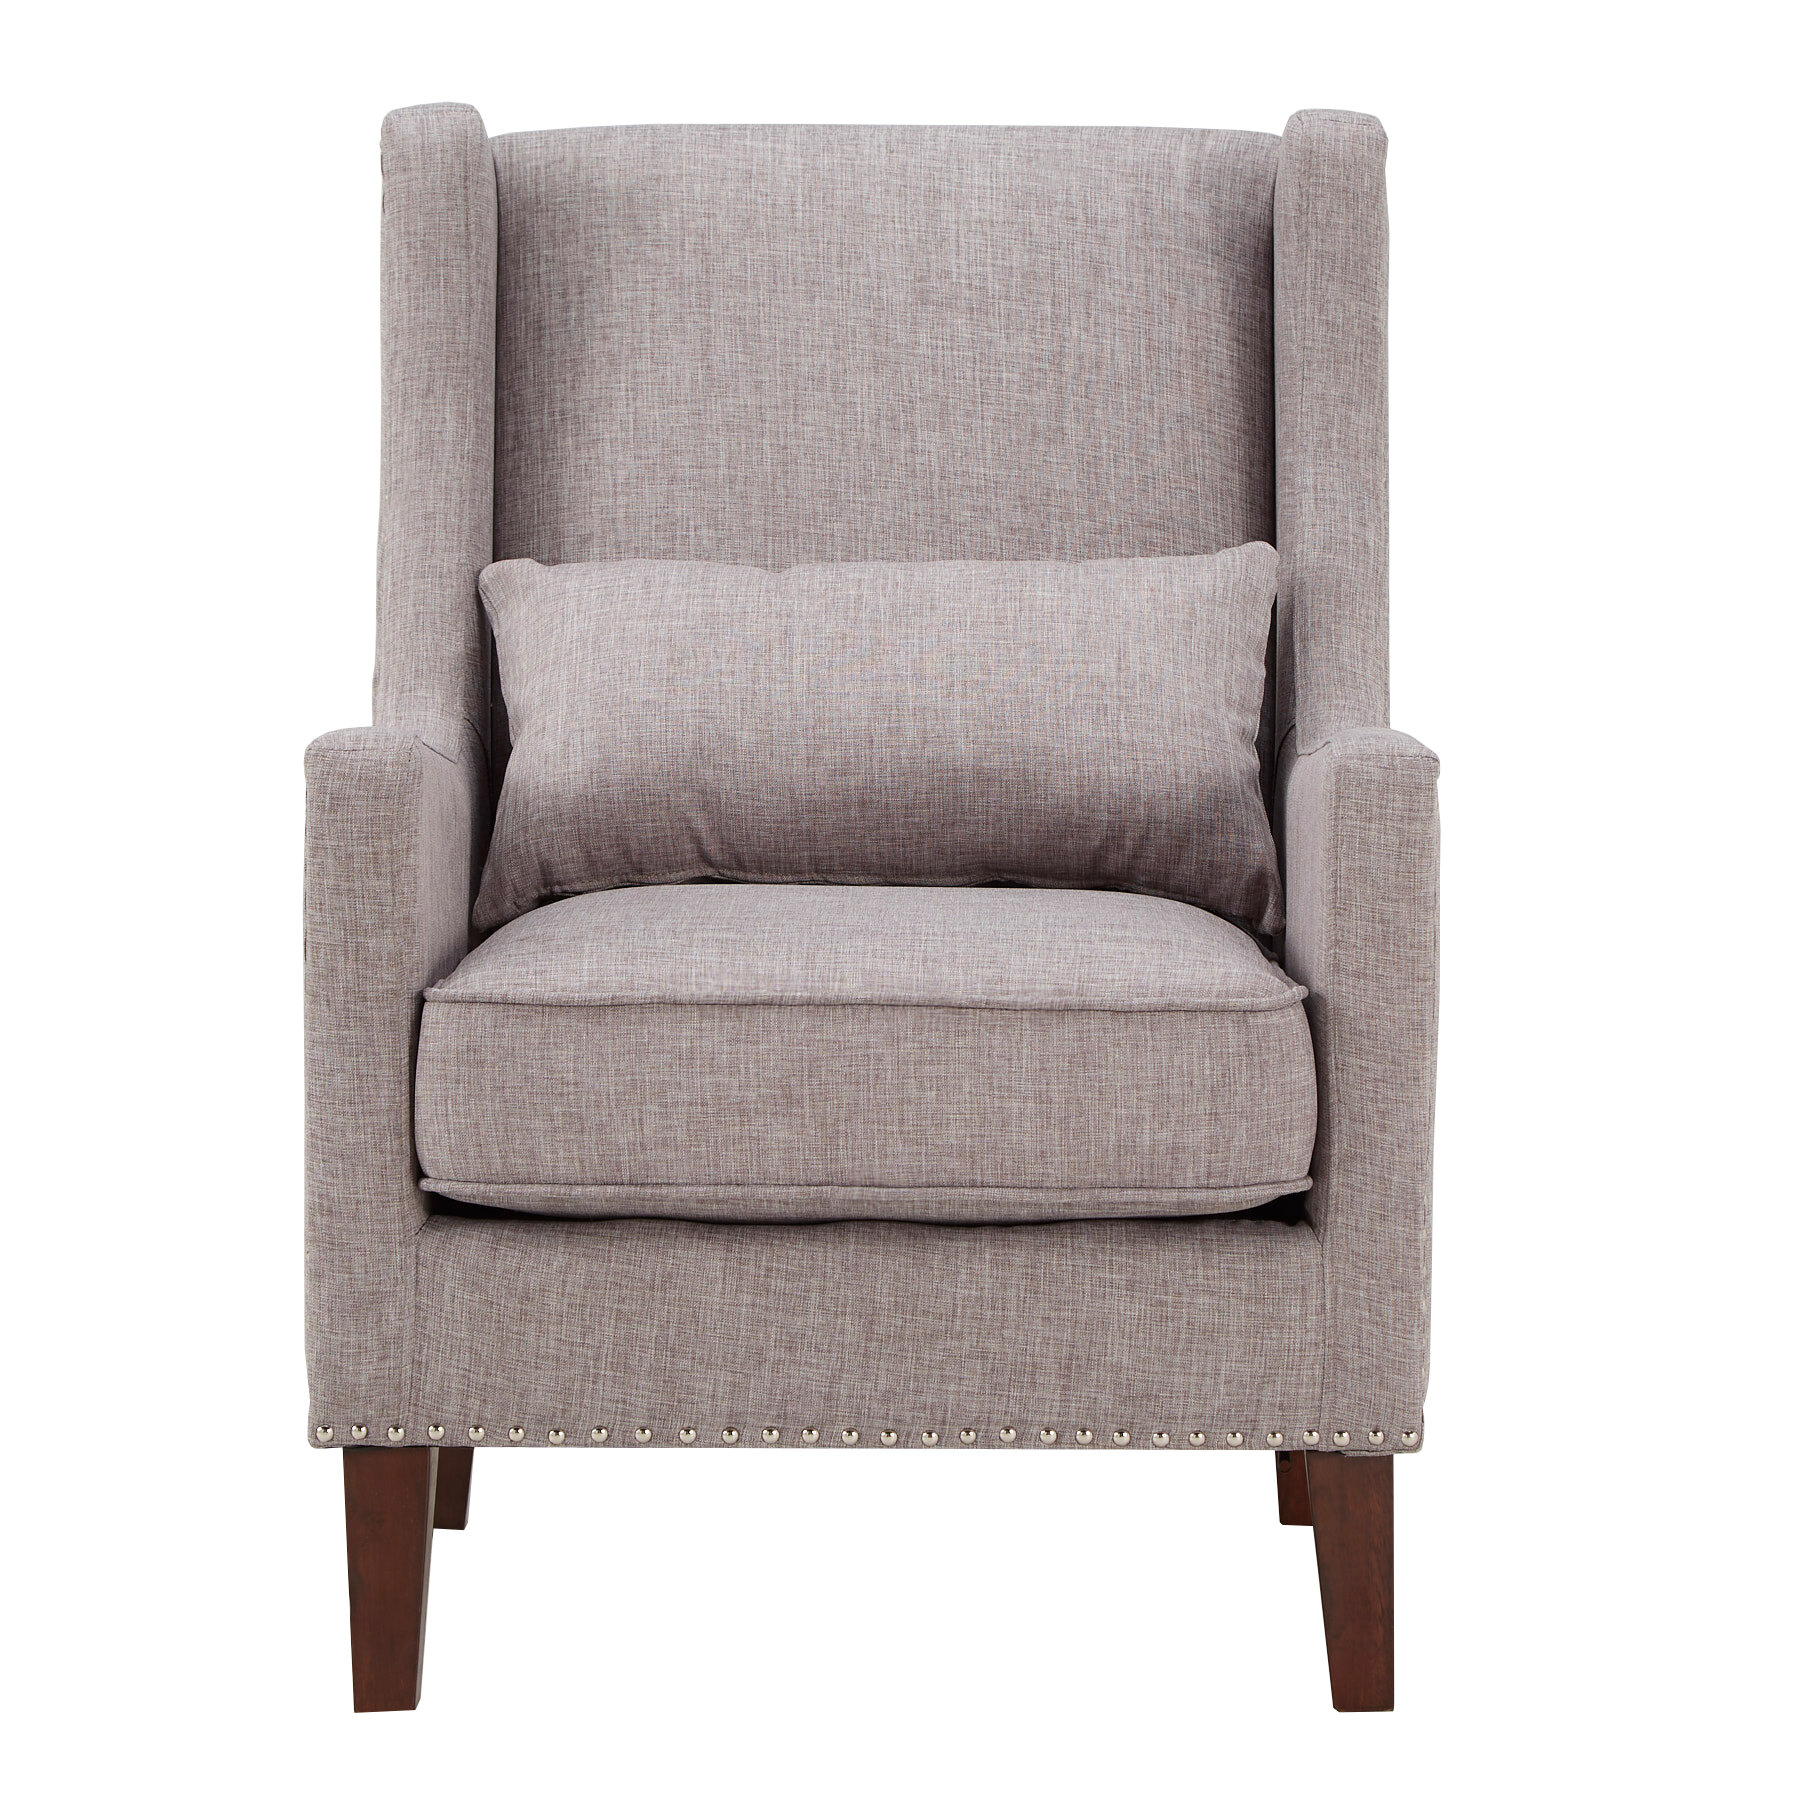 Charmant Andover Mills Oneill Wingback Chair U0026 Reviews | Wayfair